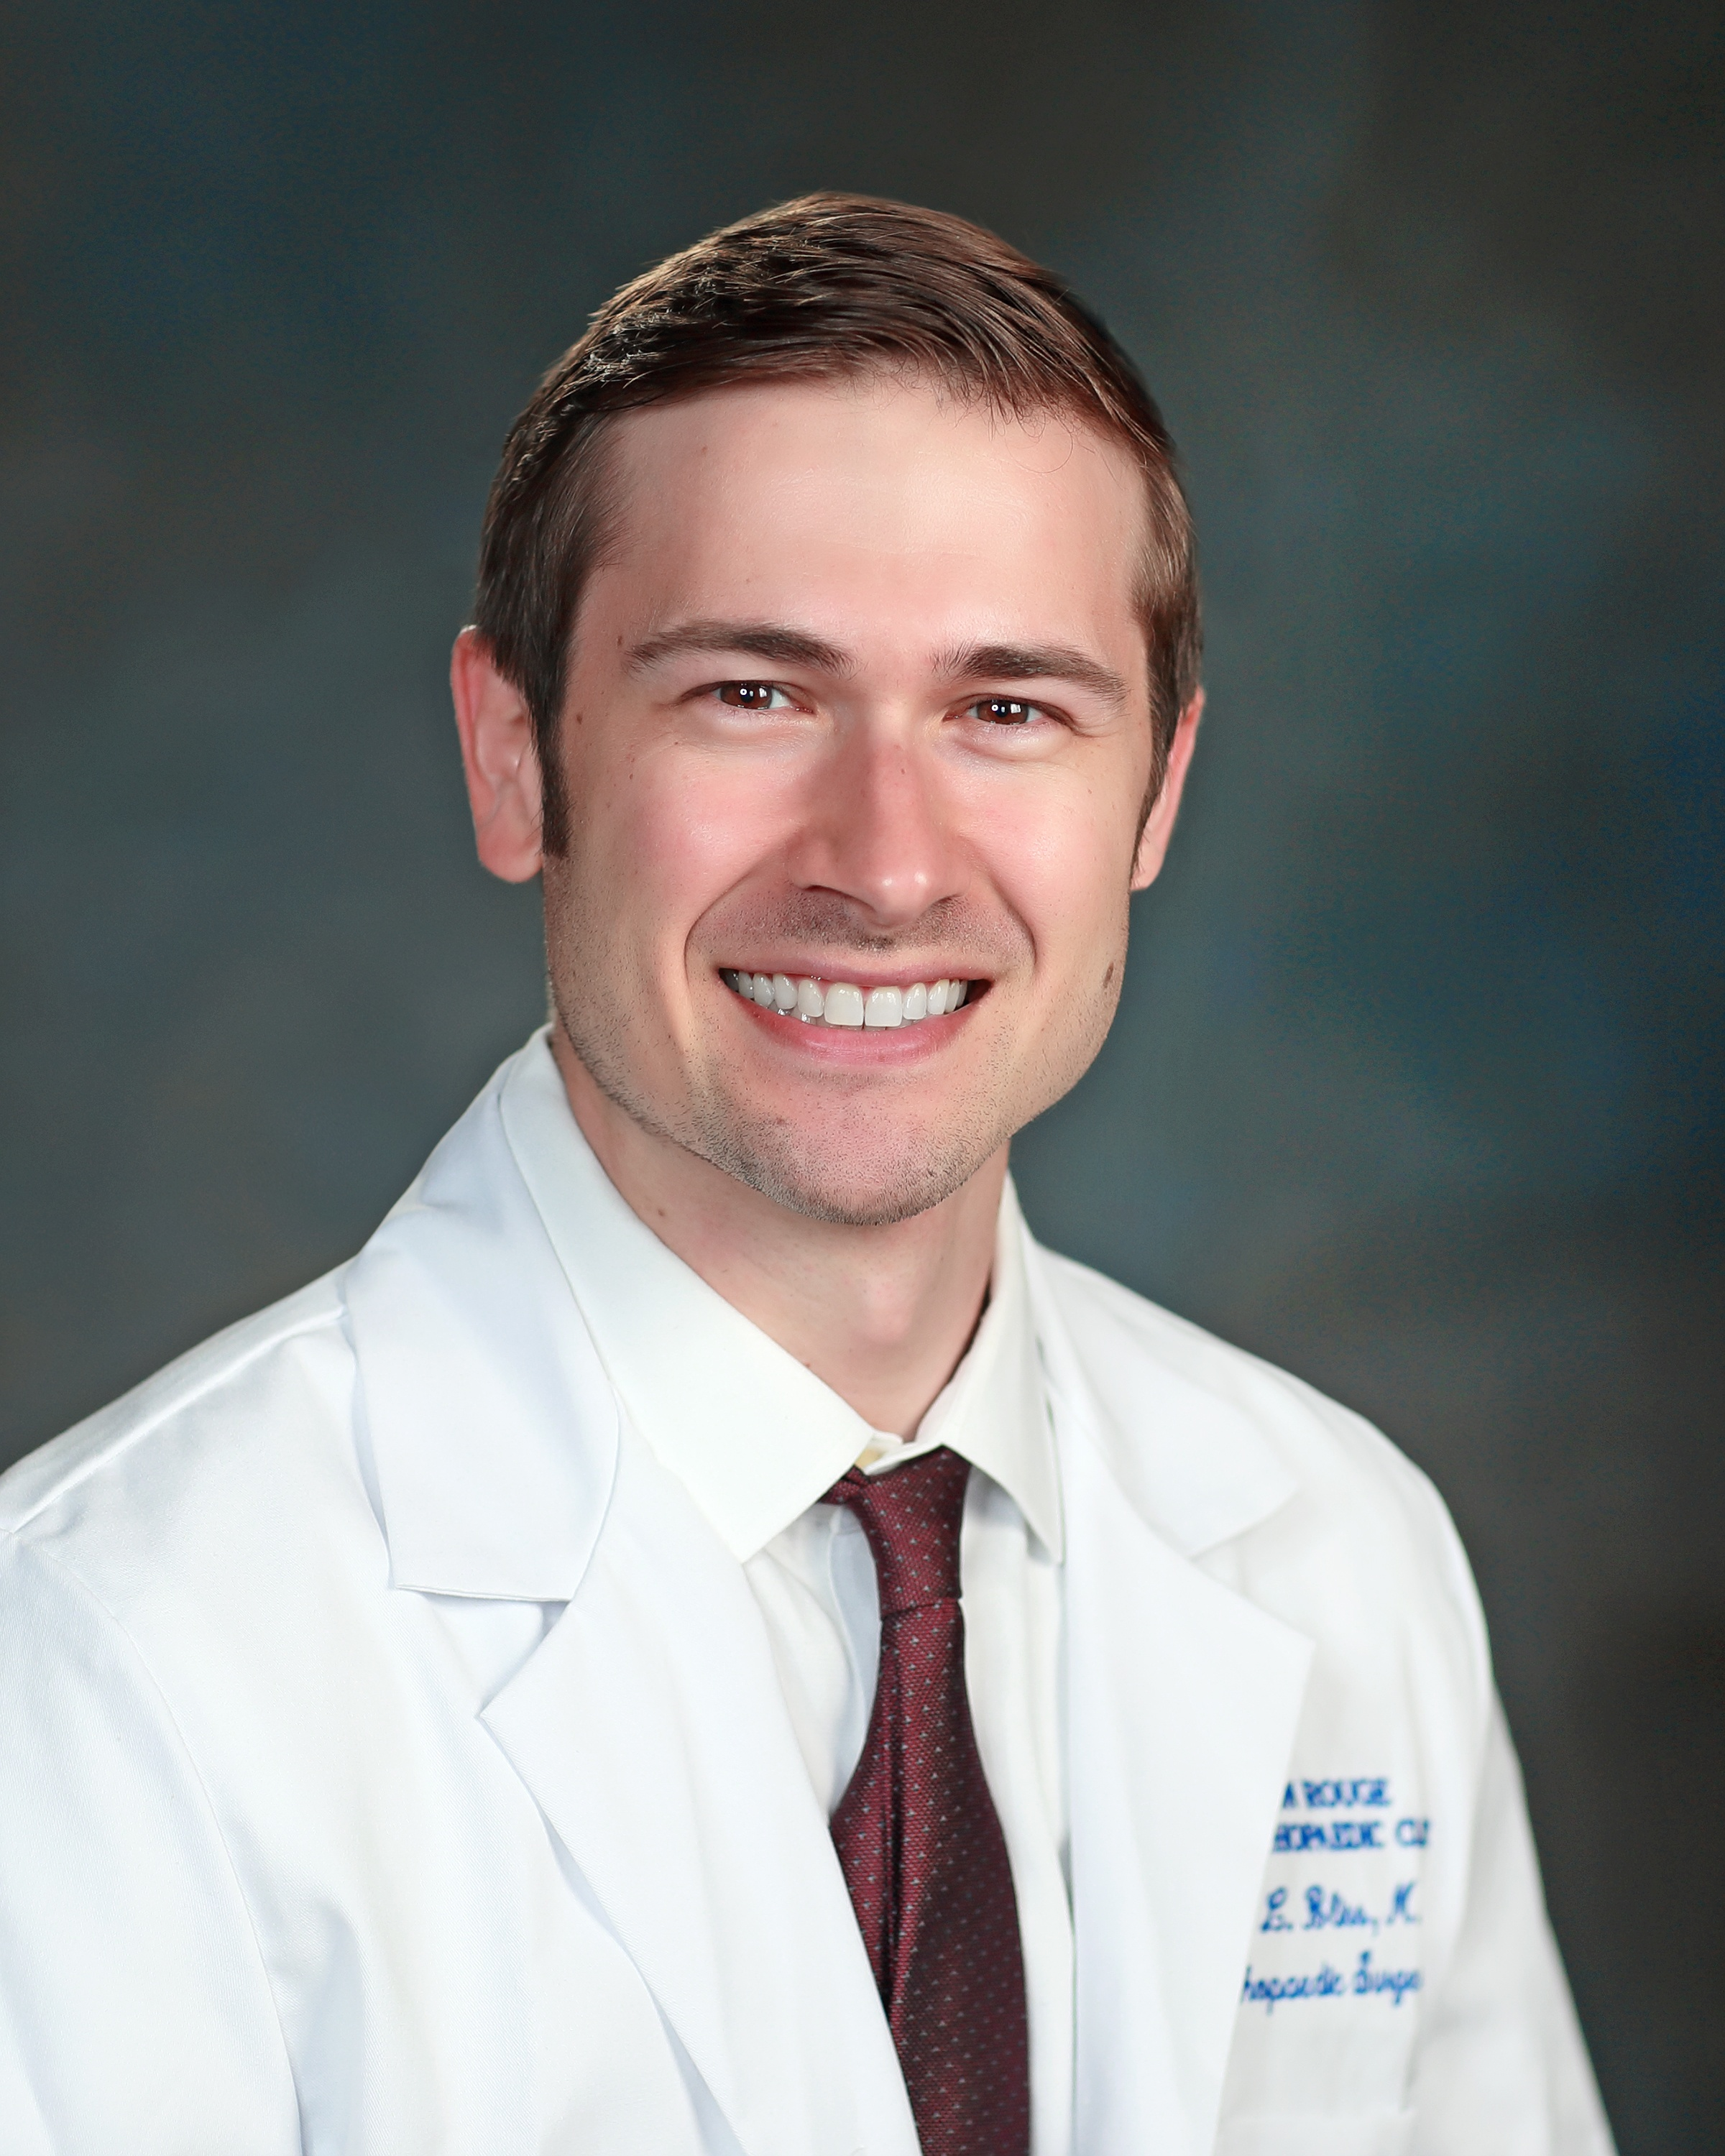 Ryan Bliss, M.D.